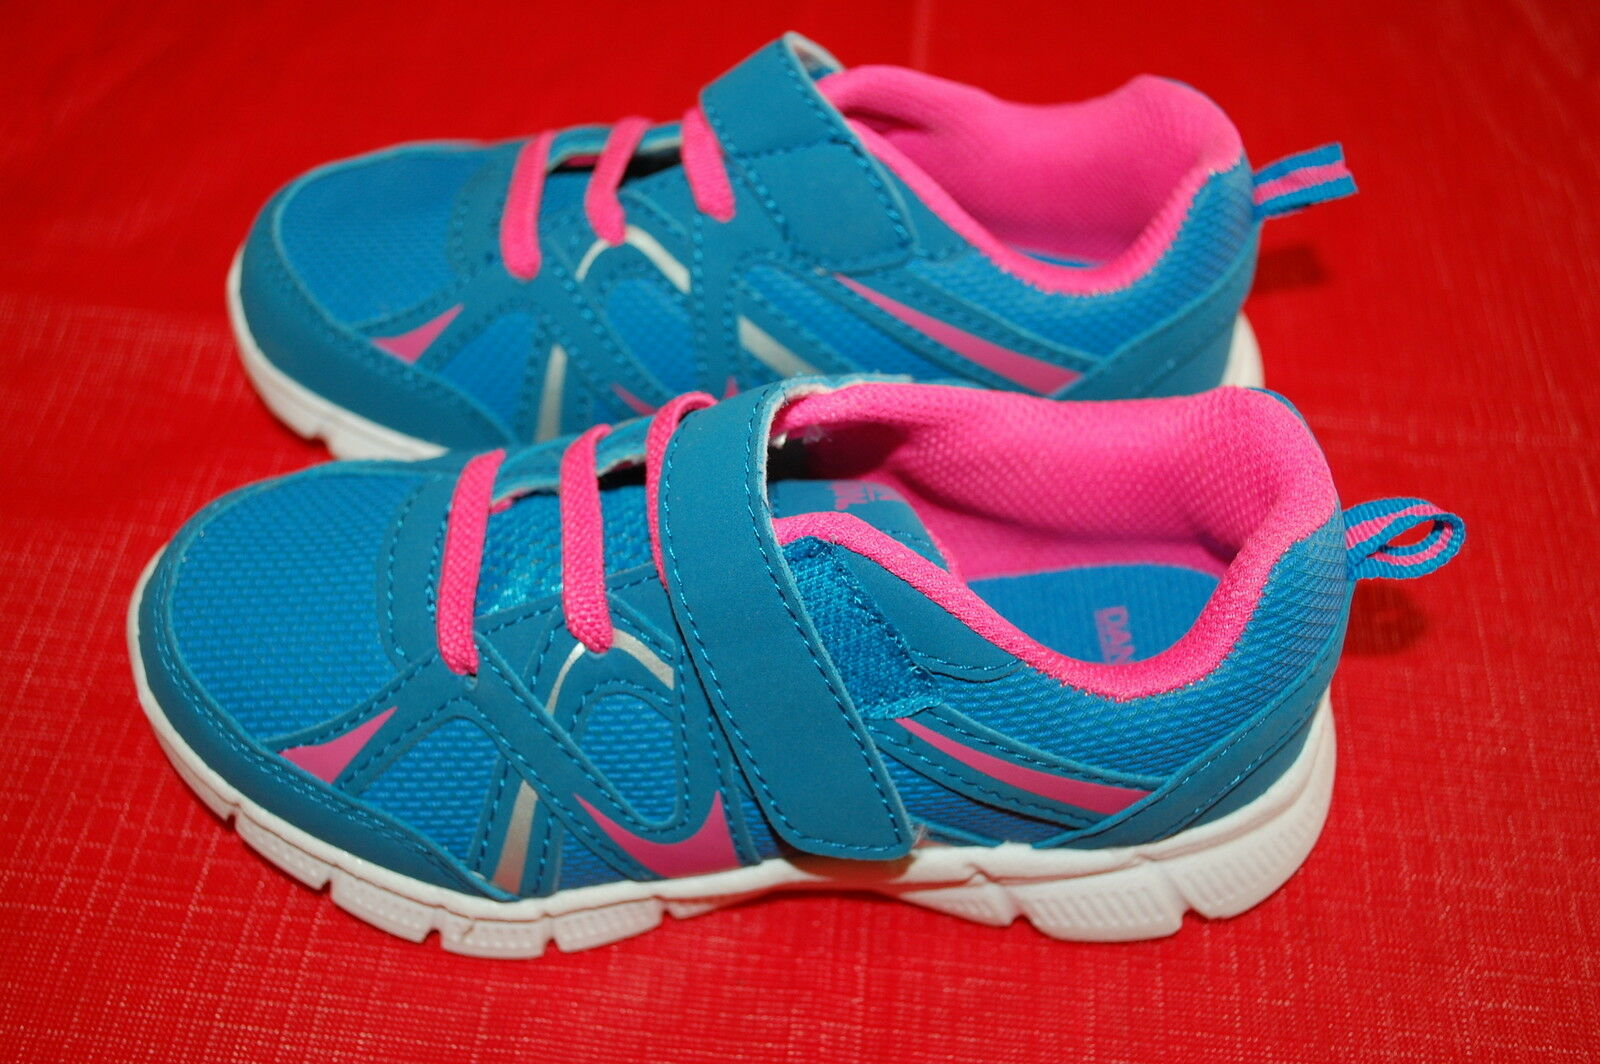 Toddler Girls Athletic Tennis Shoes